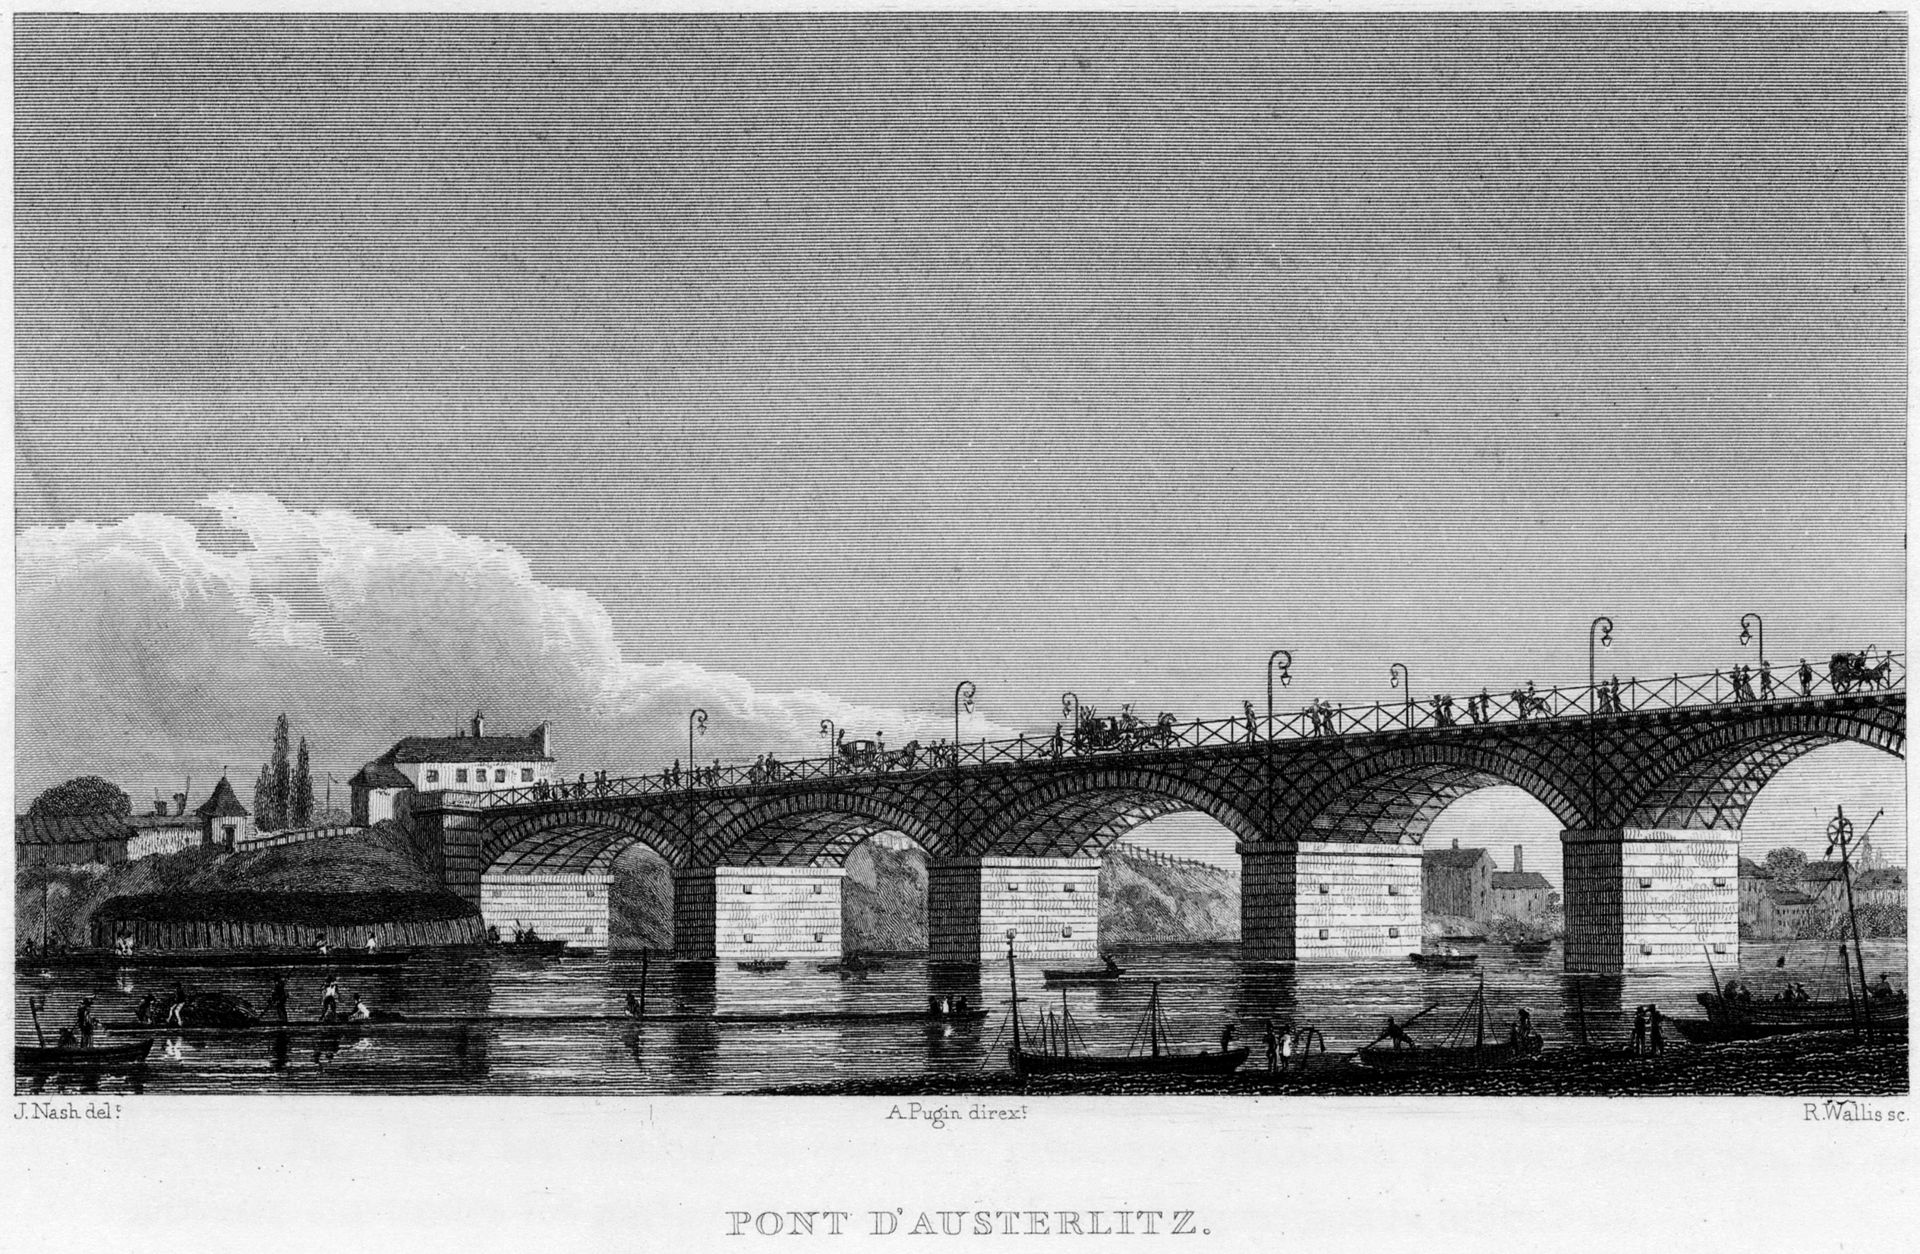 Pont d'Austerlitz in 1831, a public domain image available from the Brown University Library under the digital ID  1093026131948250 .